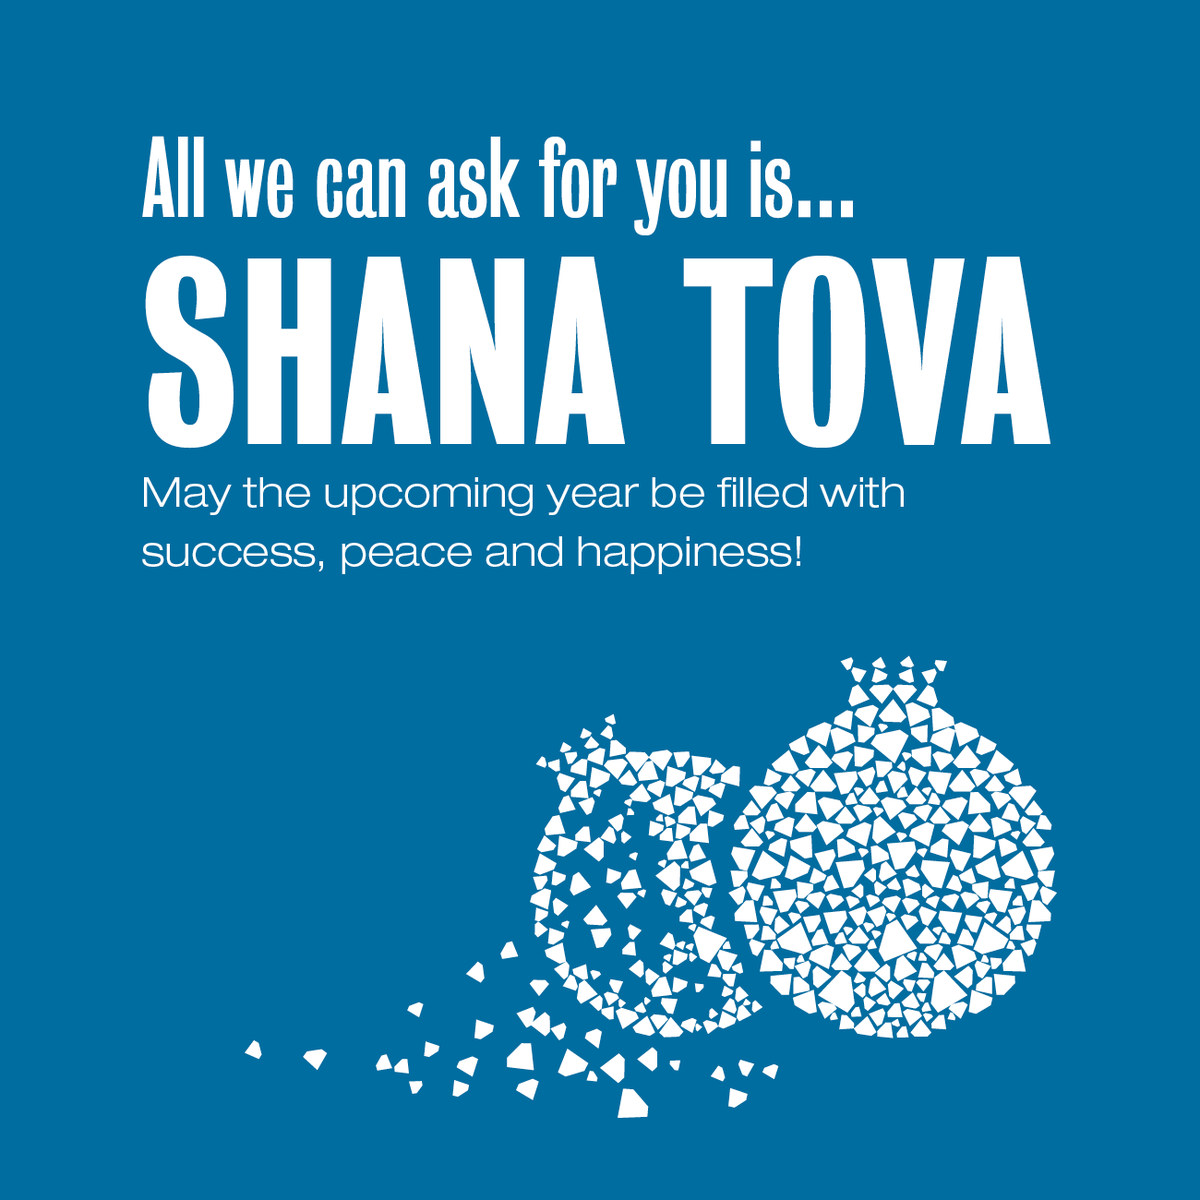 Idi Shows On Twitter To Honor Roshhashana The Jewish New Year We Would Like To Wish Everyone A Happy Healthy And Prosperous New Year